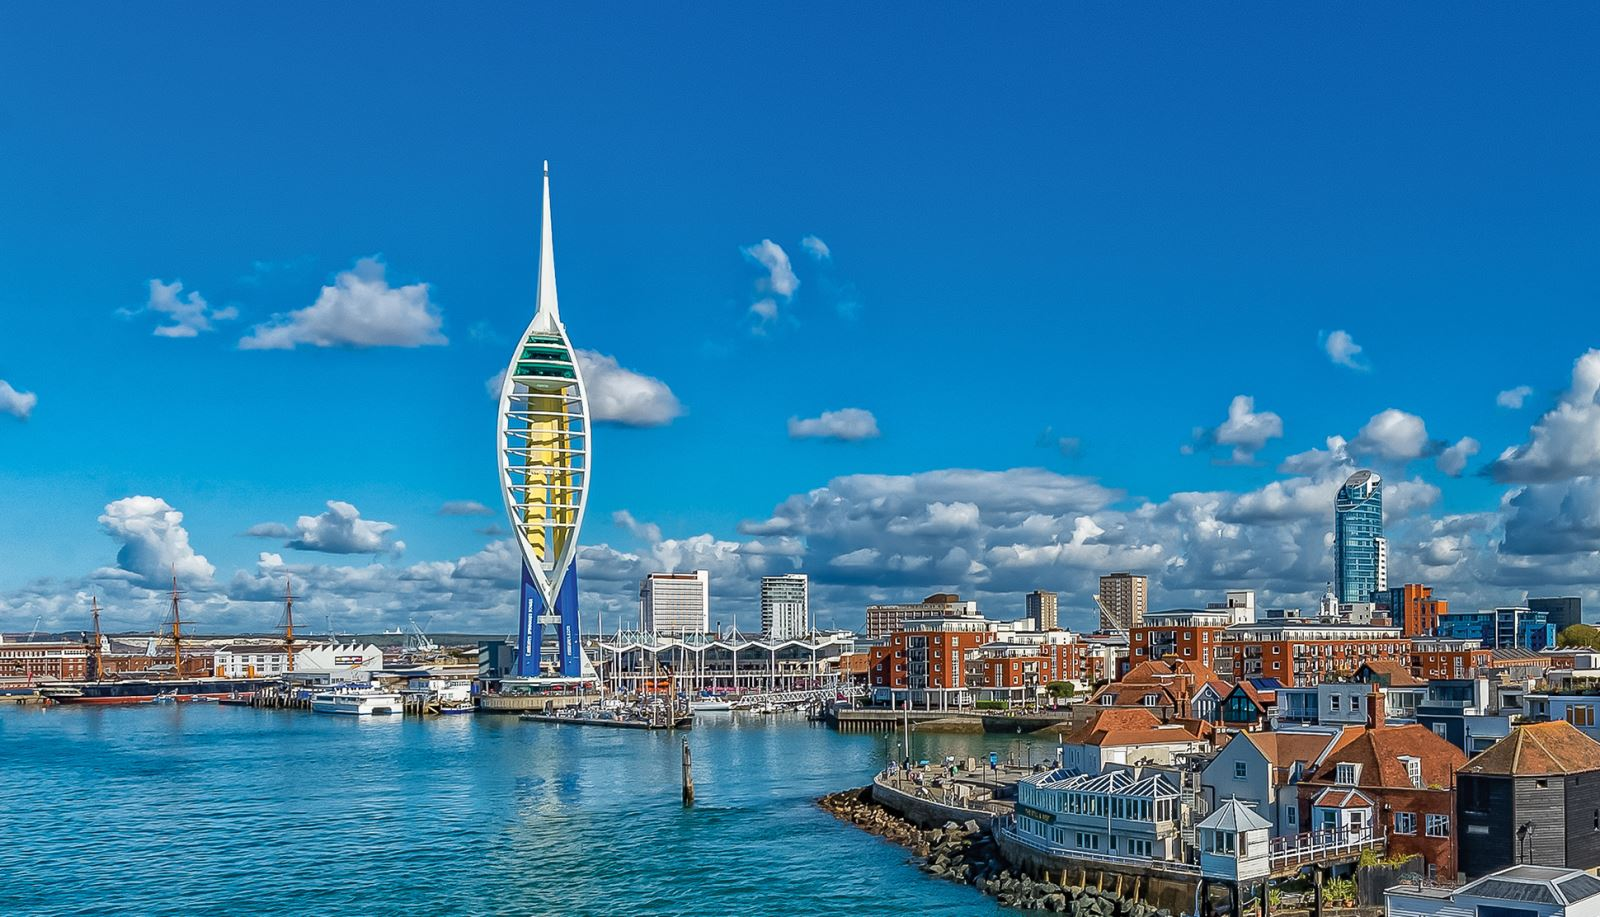 The water font and Spinnaker Tower in the city of Portsmouth